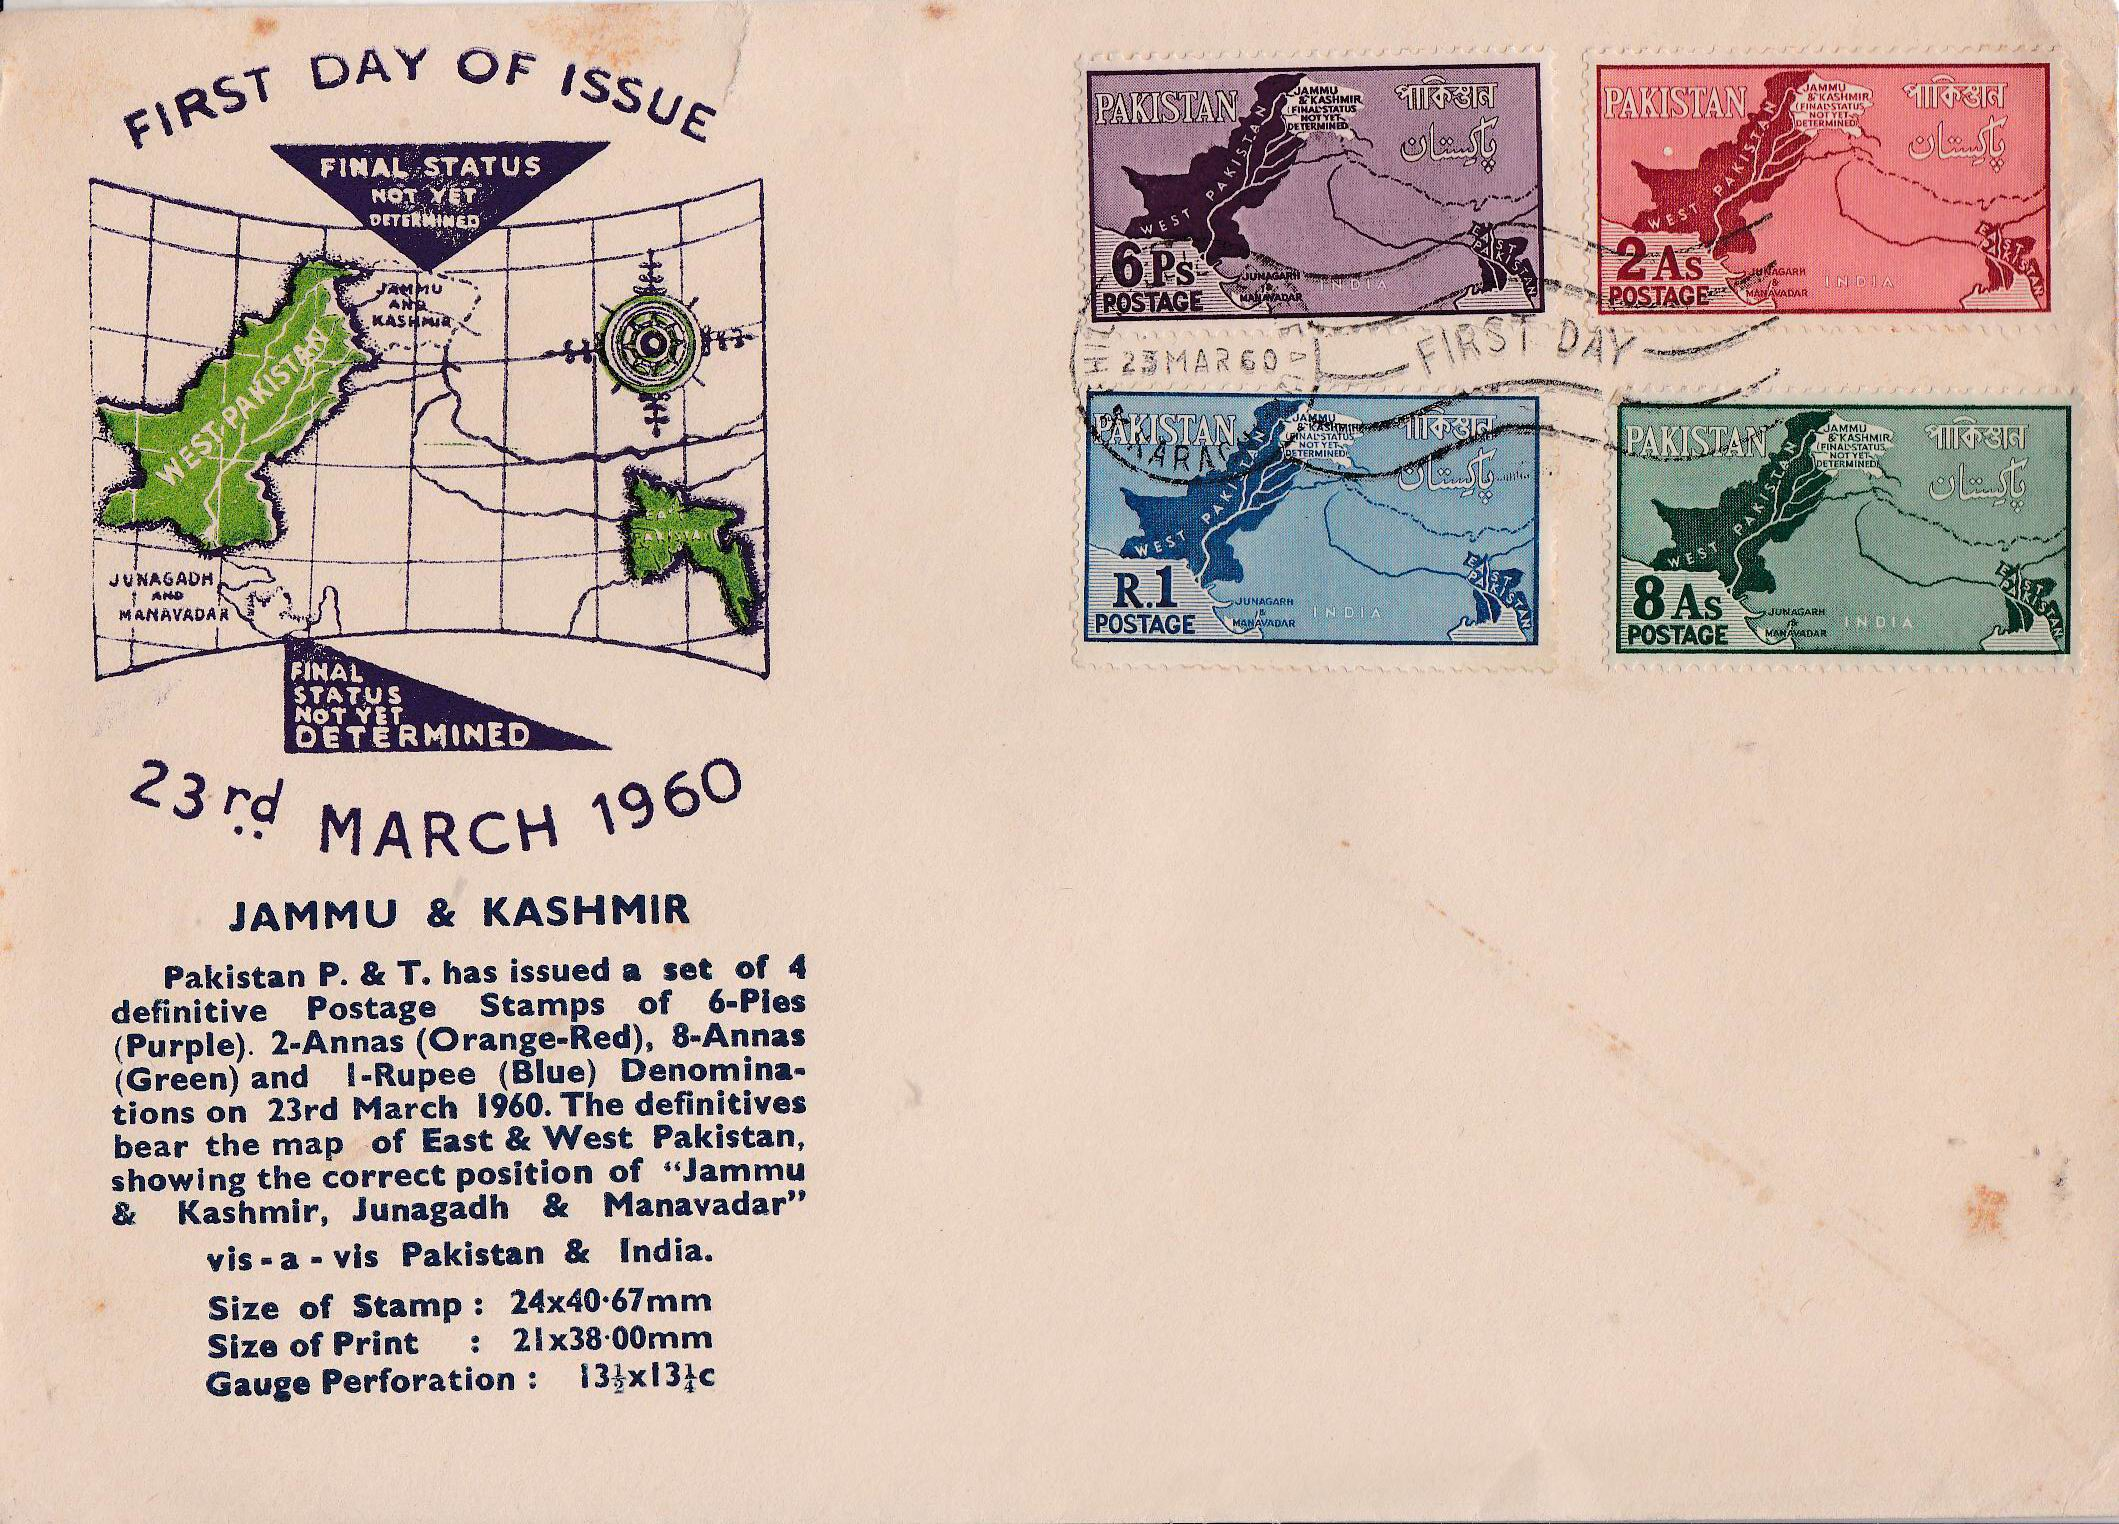 Pakistan Fdc 1960 Kashmir As Disputed Territory Map Junagarh 02